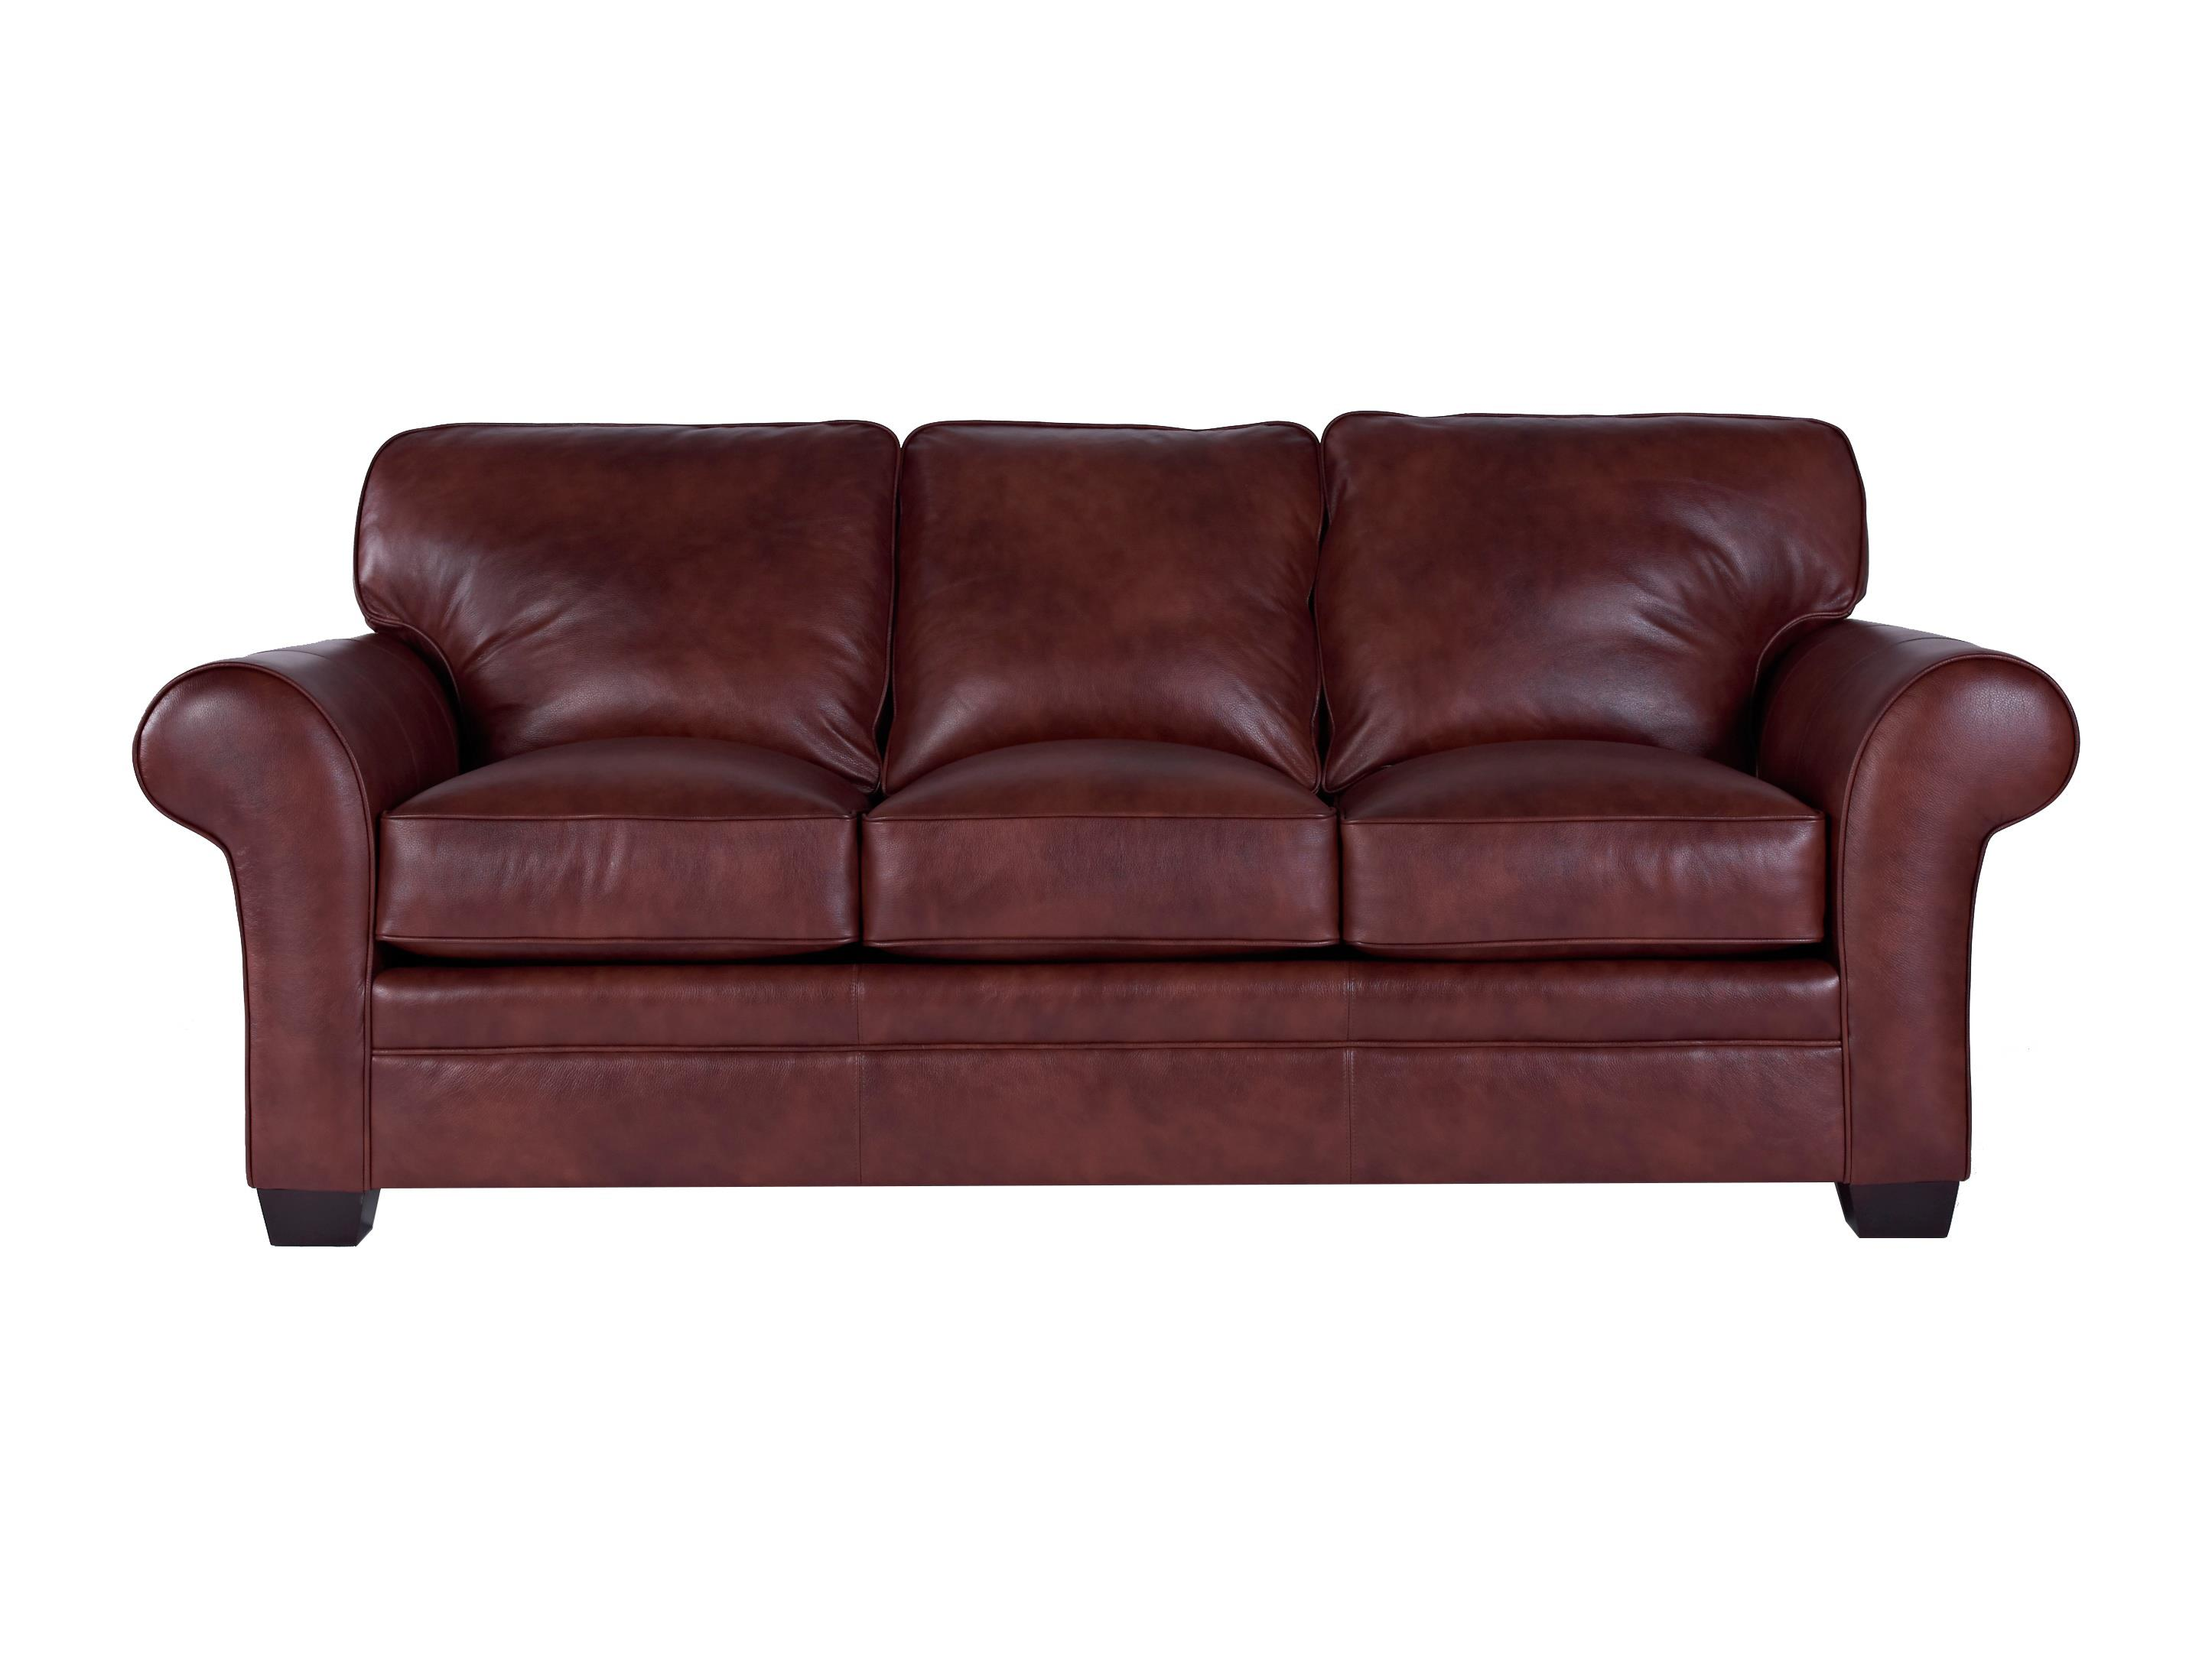 Broyhill Furniture Zachary Upholstered Sofa Item Number L7902 3 0063 22